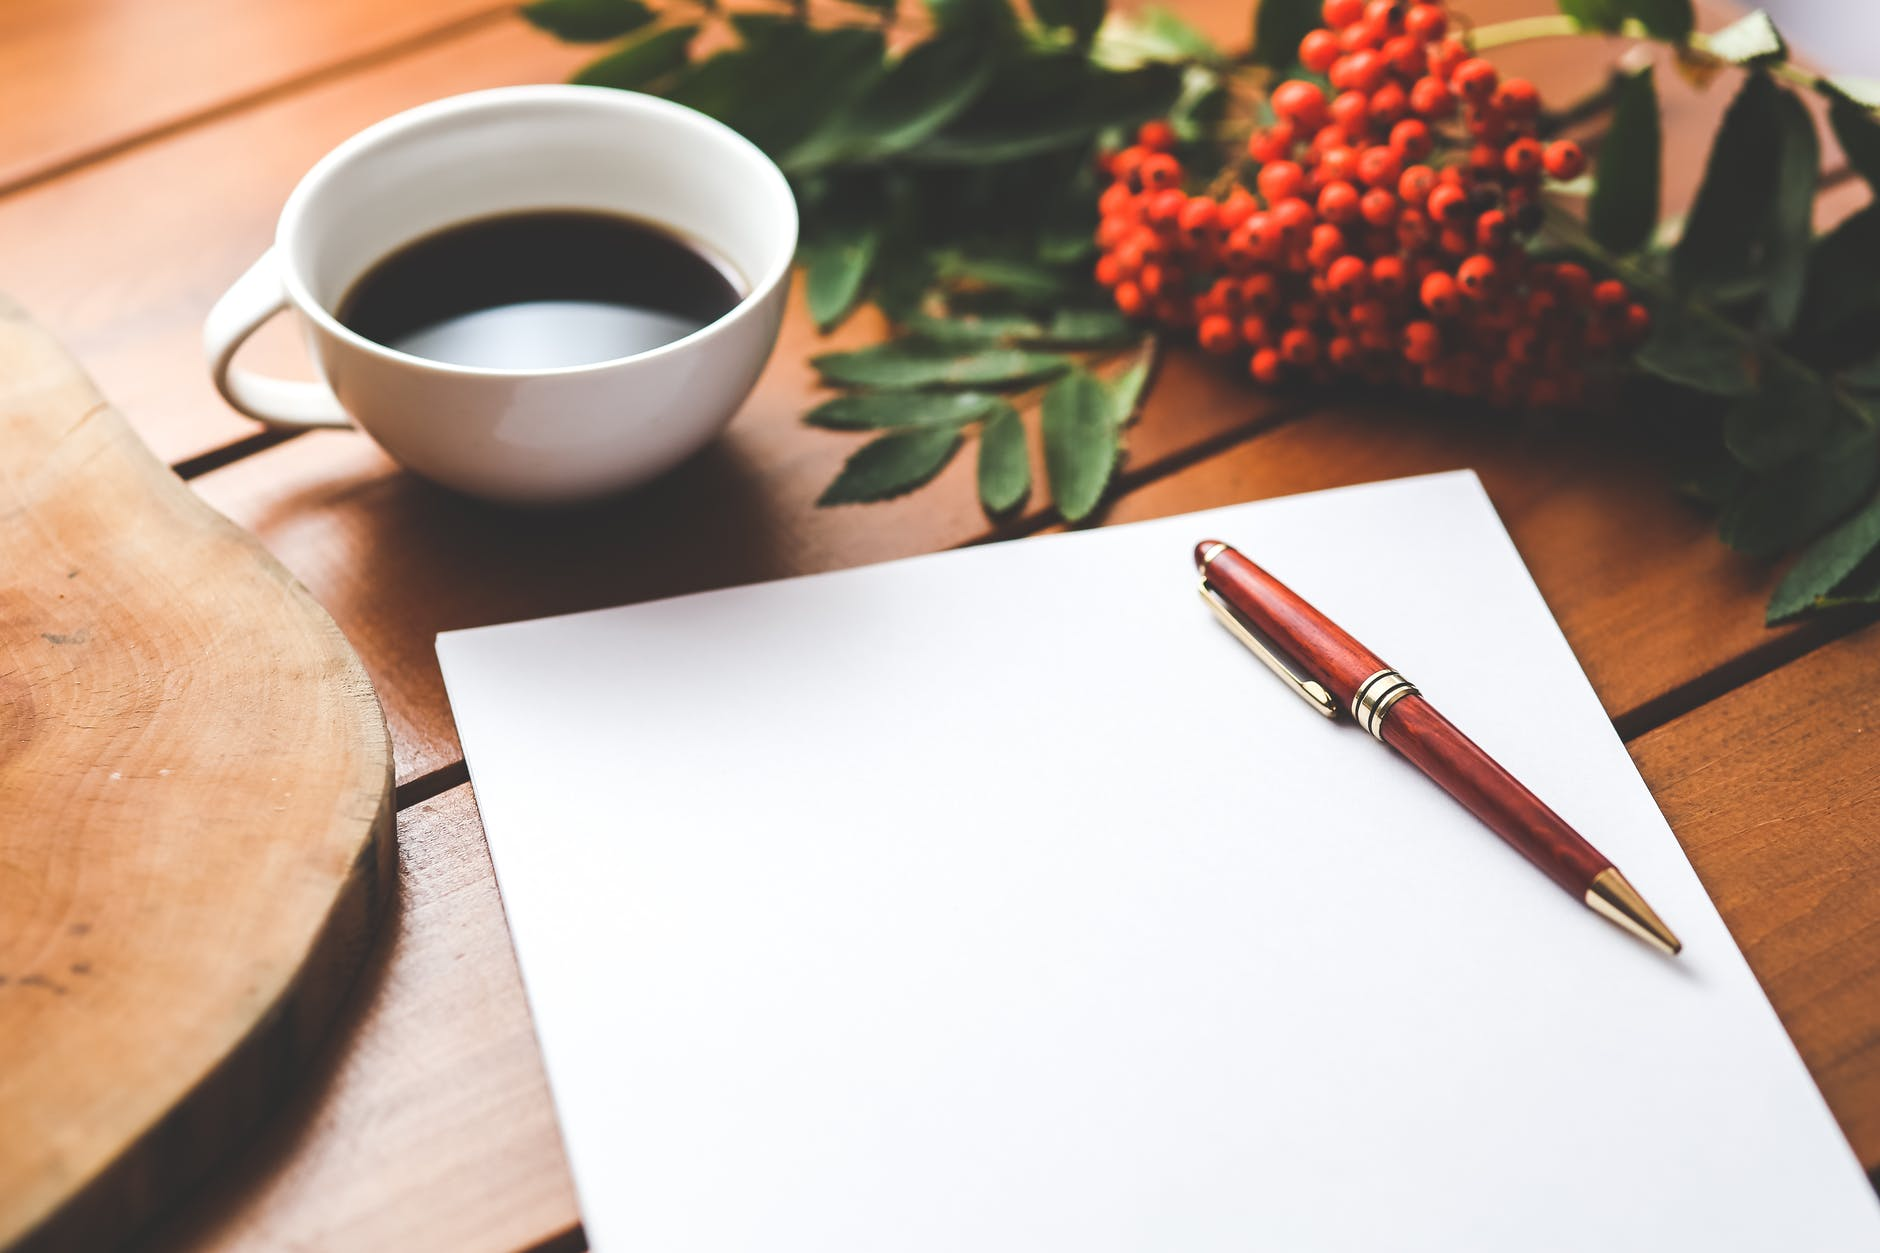 blank paper with pen and coffee cup on wood table